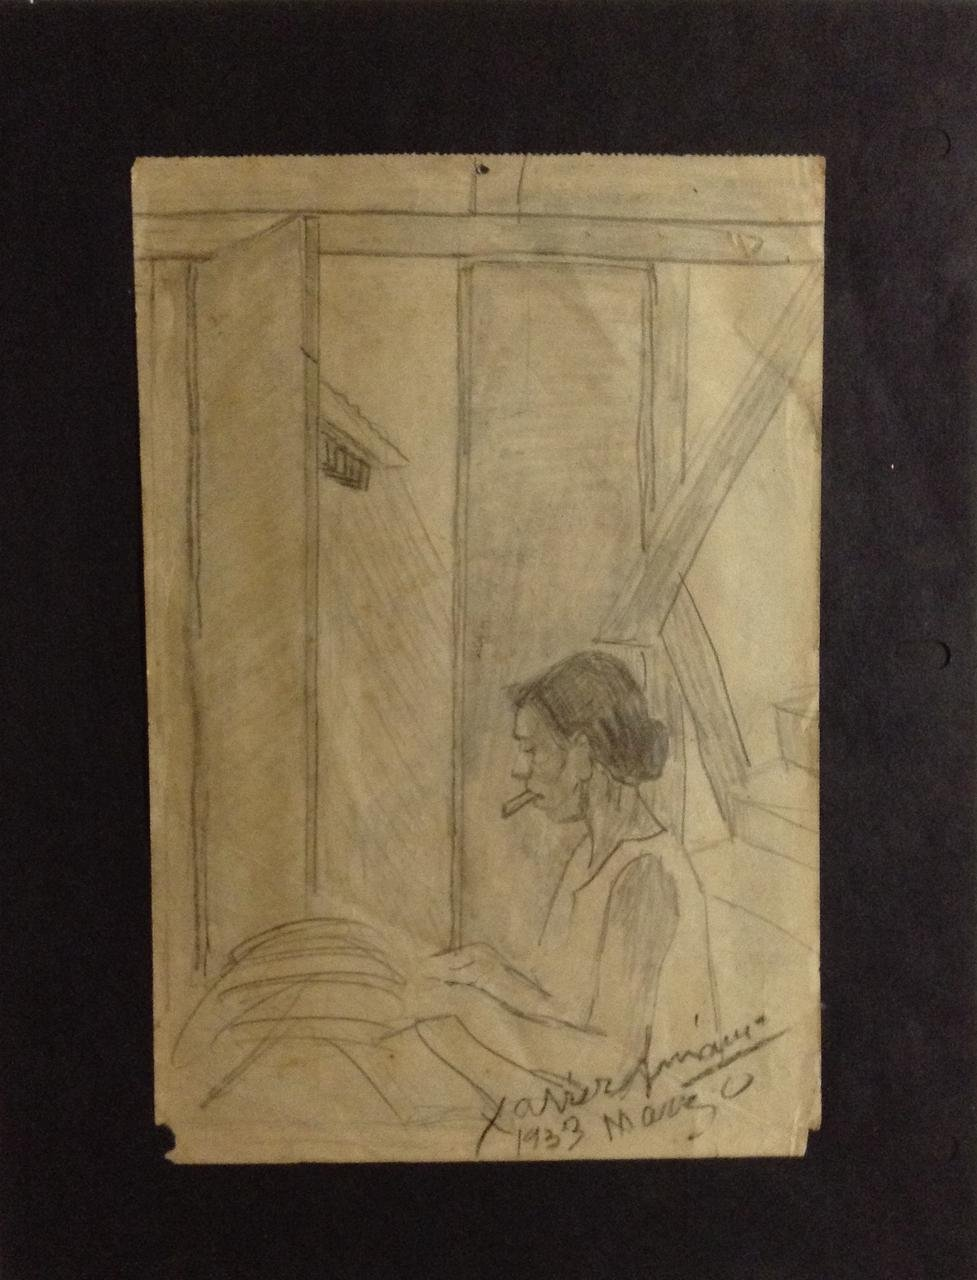 Vintage Original Haitian Drawing The Sewer 8.5'' x 6'' on Paper by